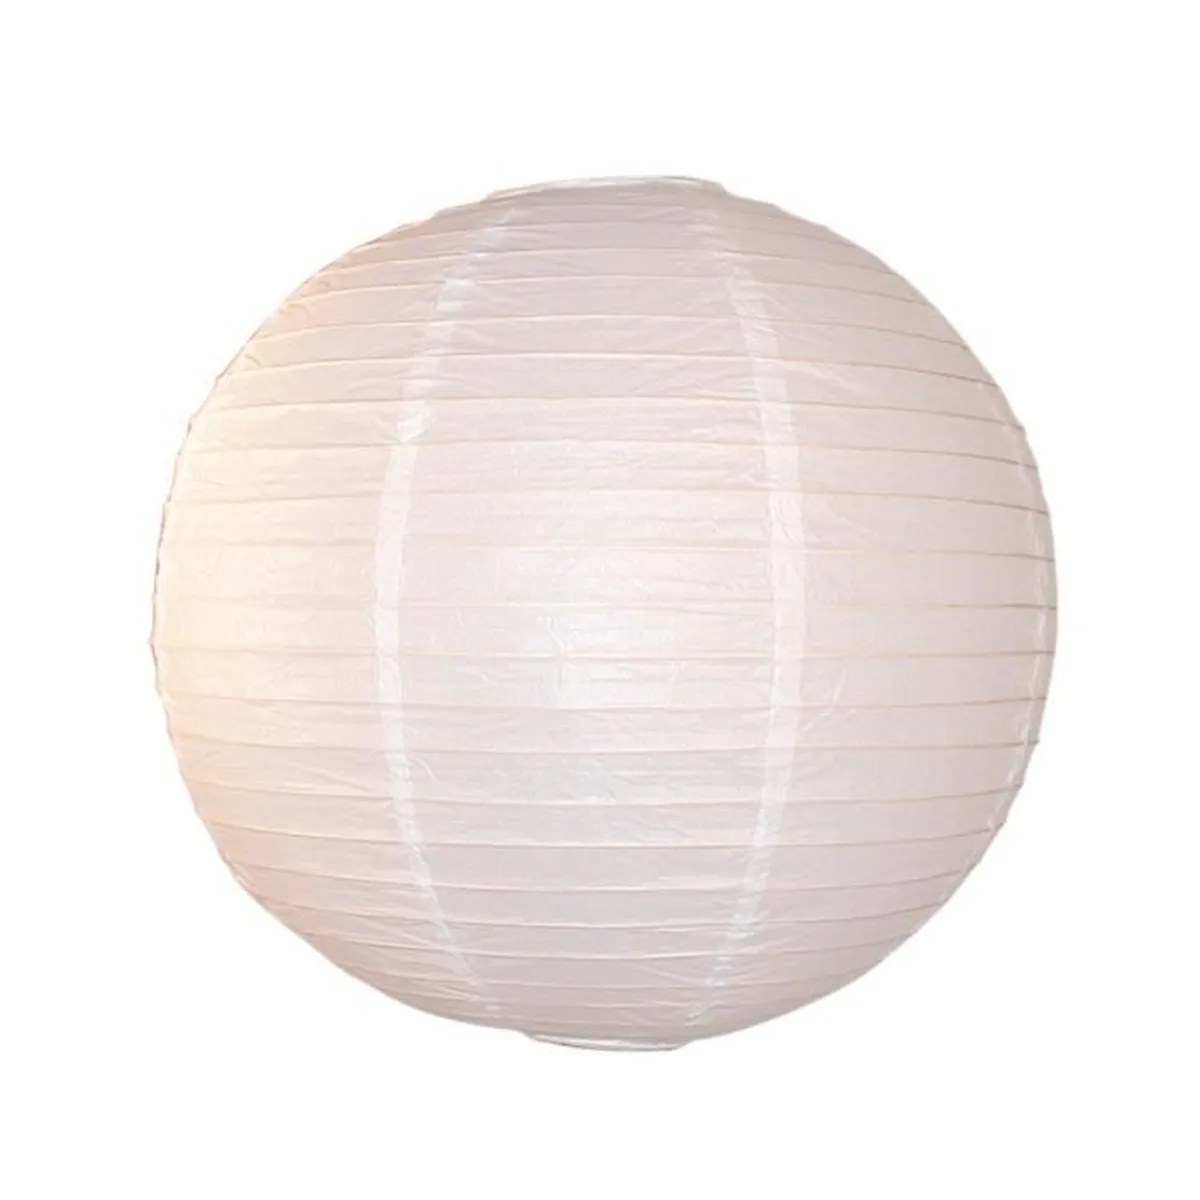 Suspension Papier Japonais Suspension Boule Japonaise En Papier Blanc Diamètre 60cm Ball